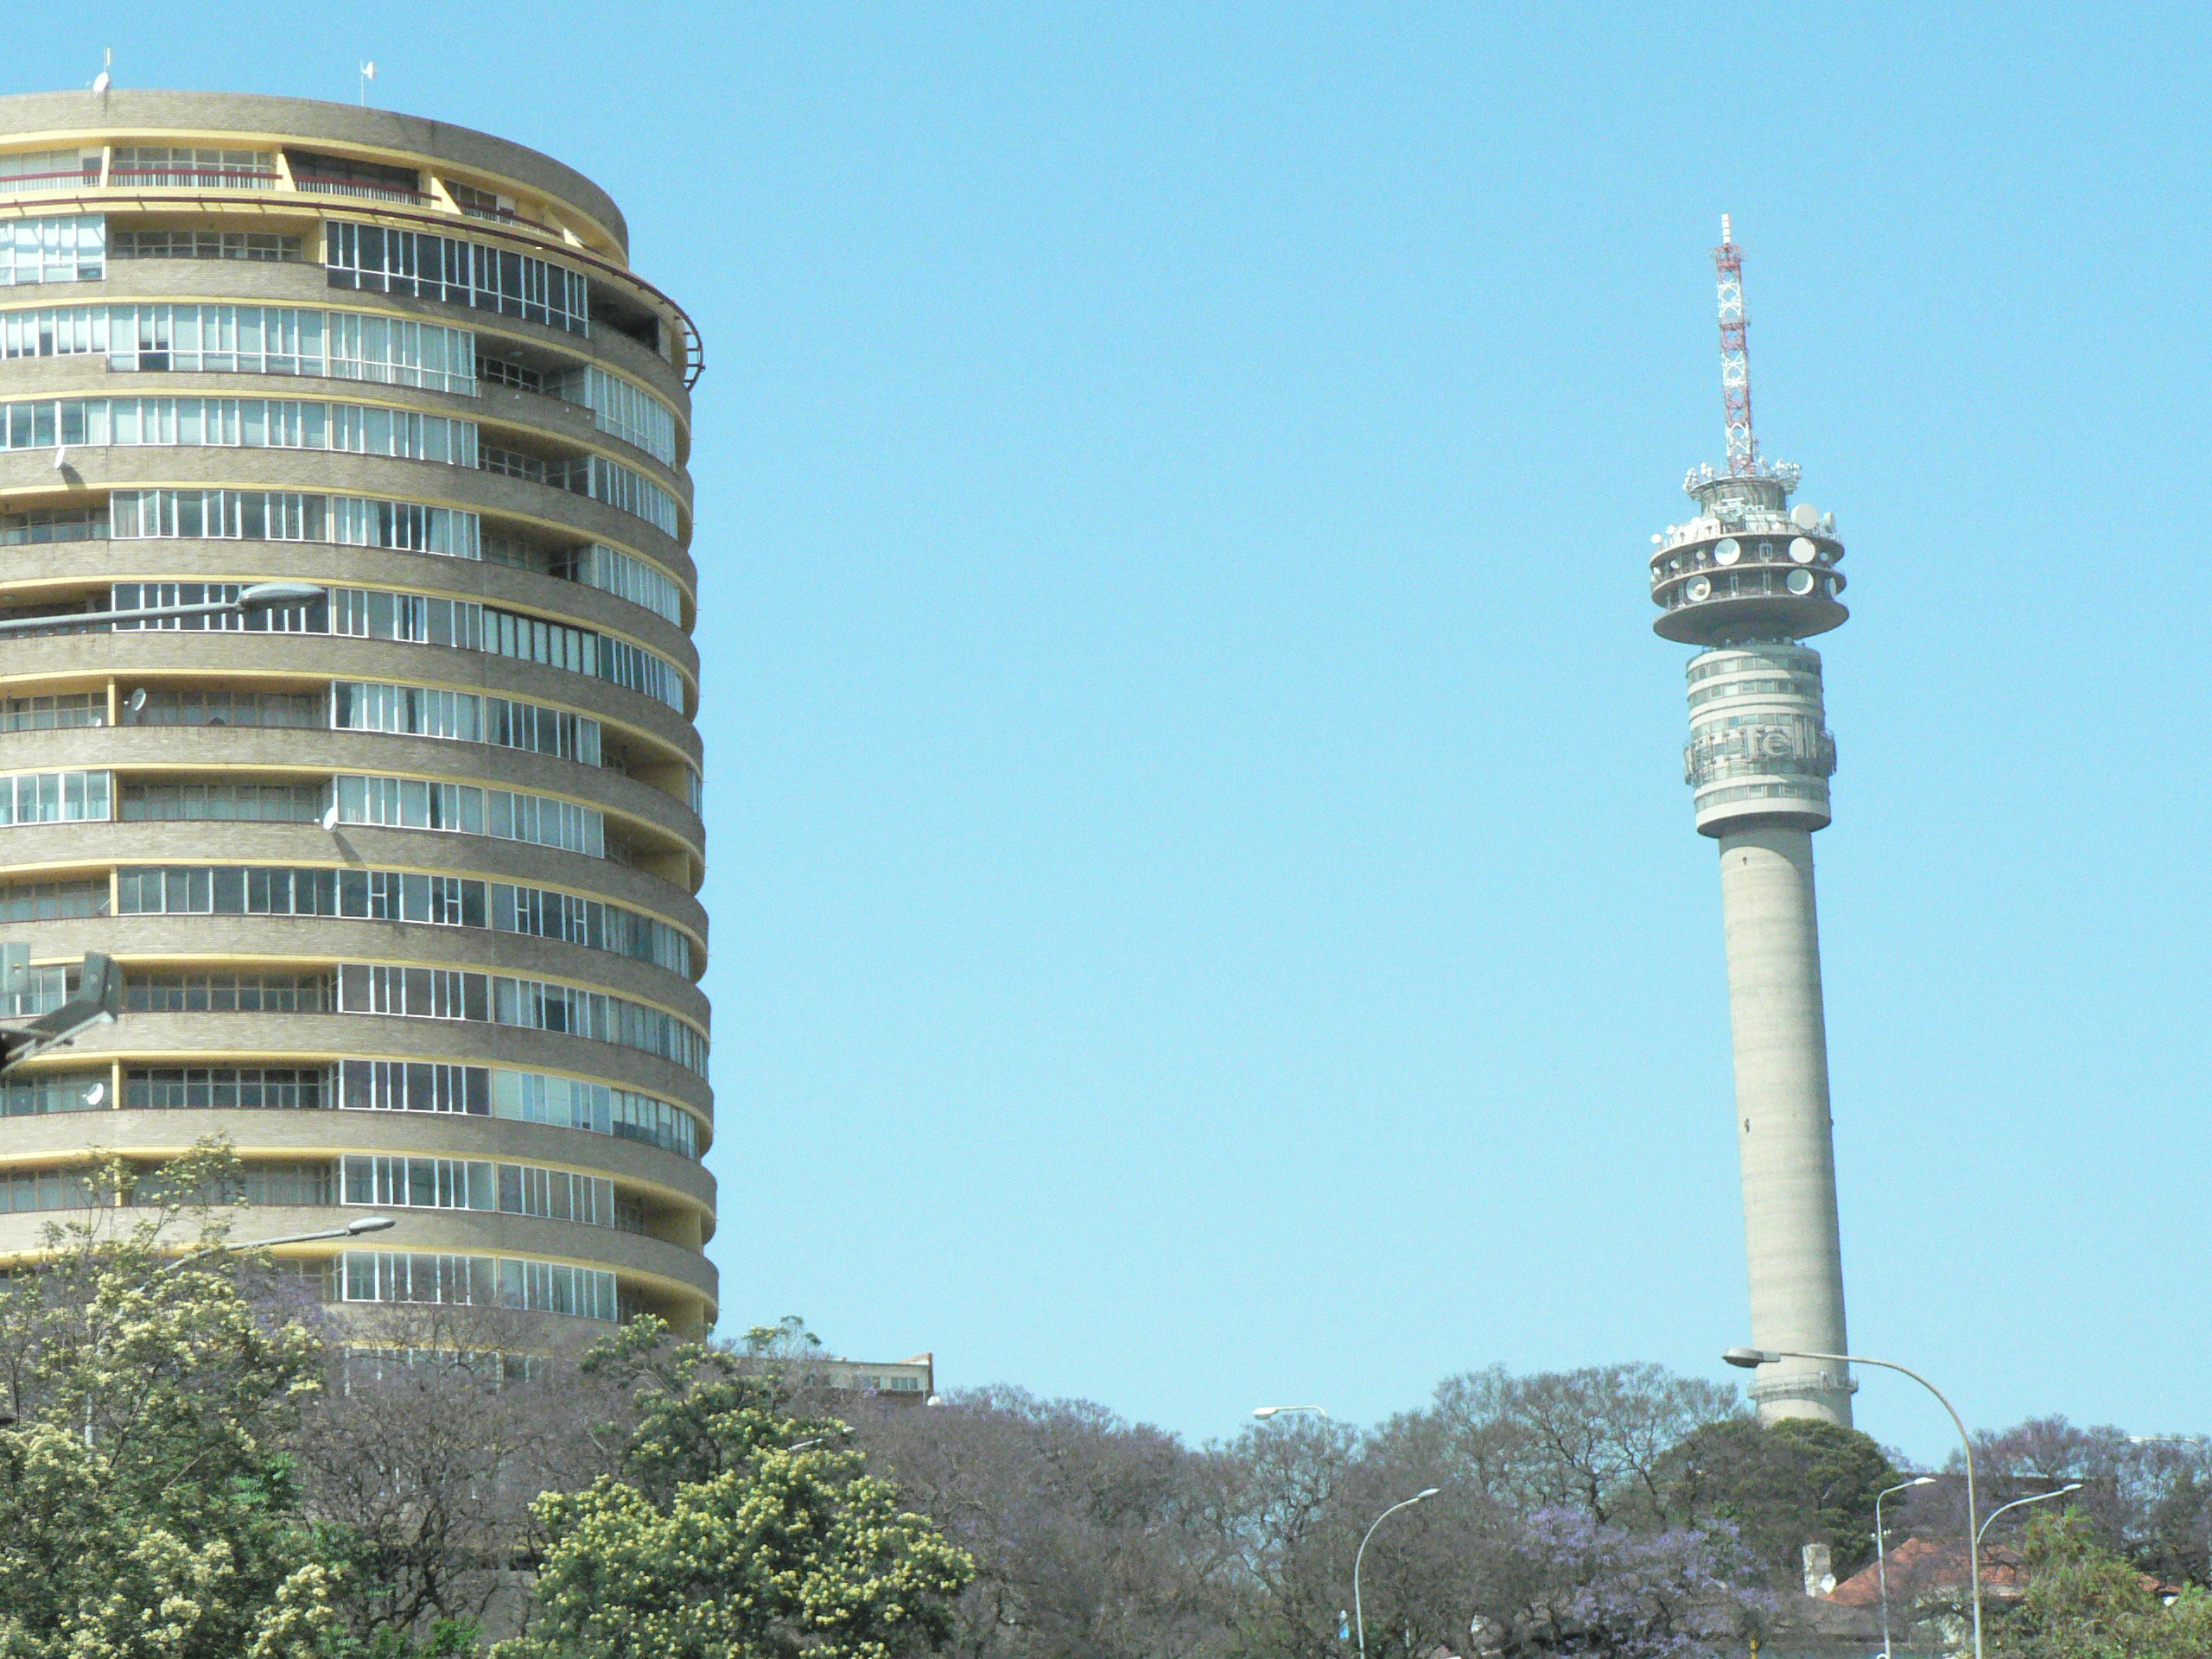 Telecom-tower-Johannesburg-South-Africa-enabling-LTE-backhaul